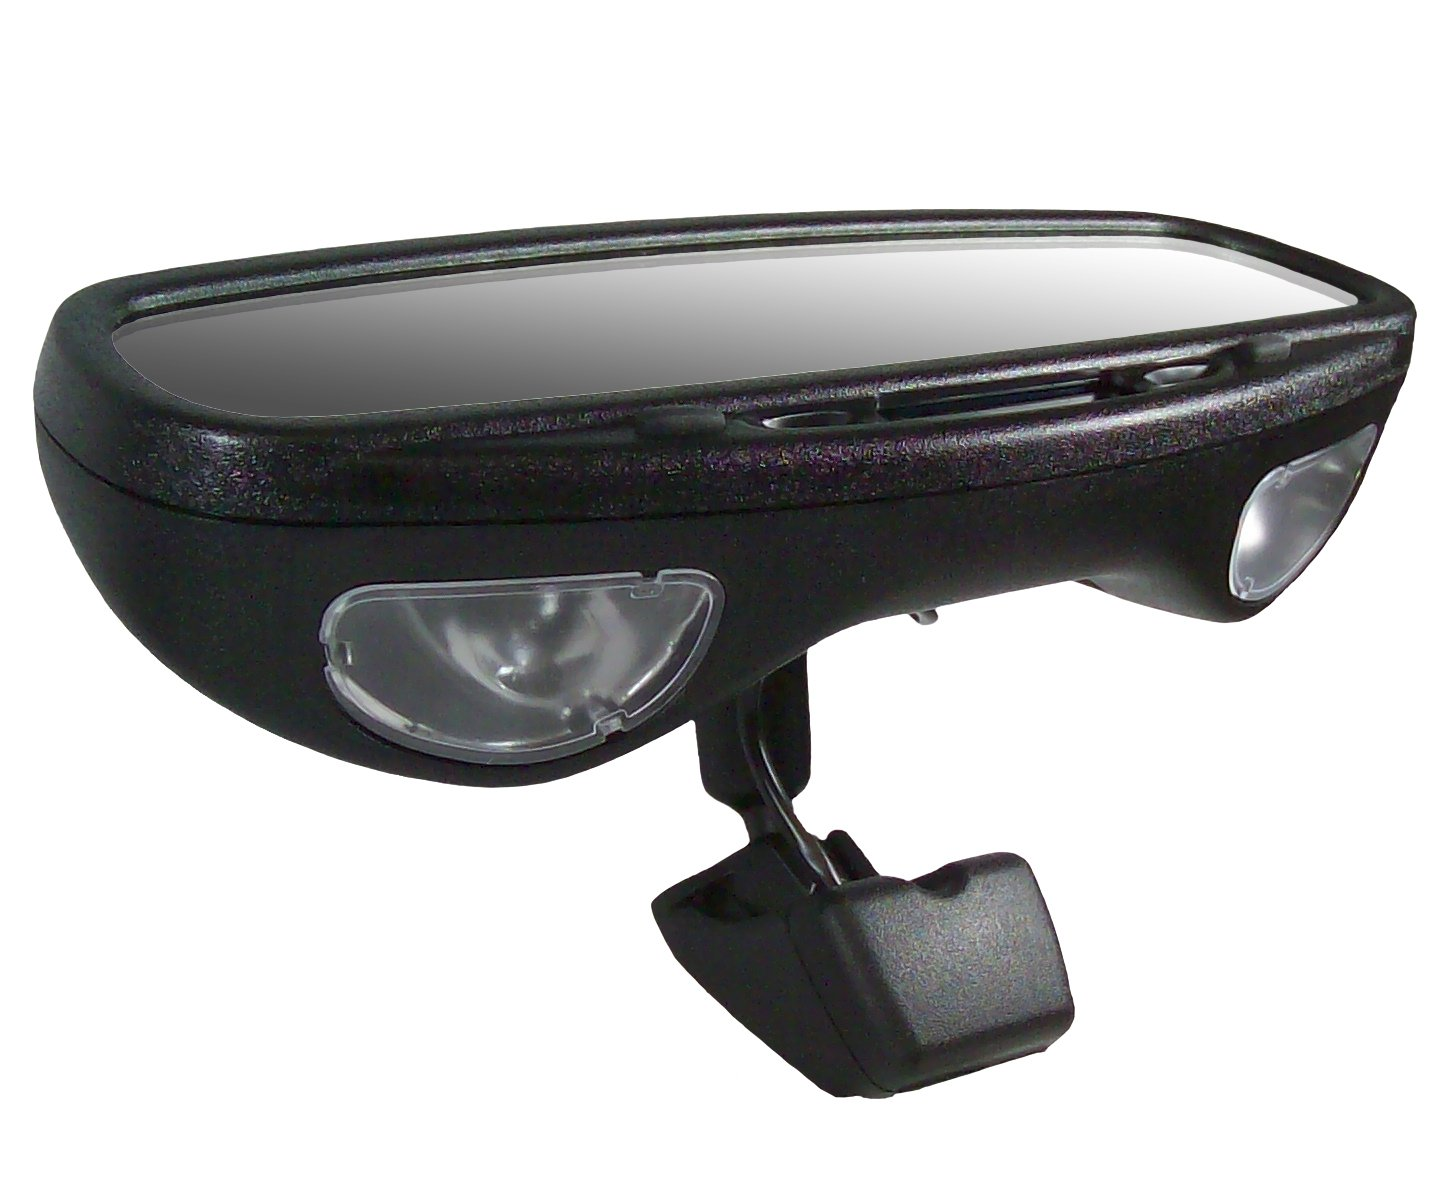 Cipa 36500 Wedge Base Auto Dimming Rearview Mirror With Vw Wiring Harness Compass Temperature And Map Light Automotive